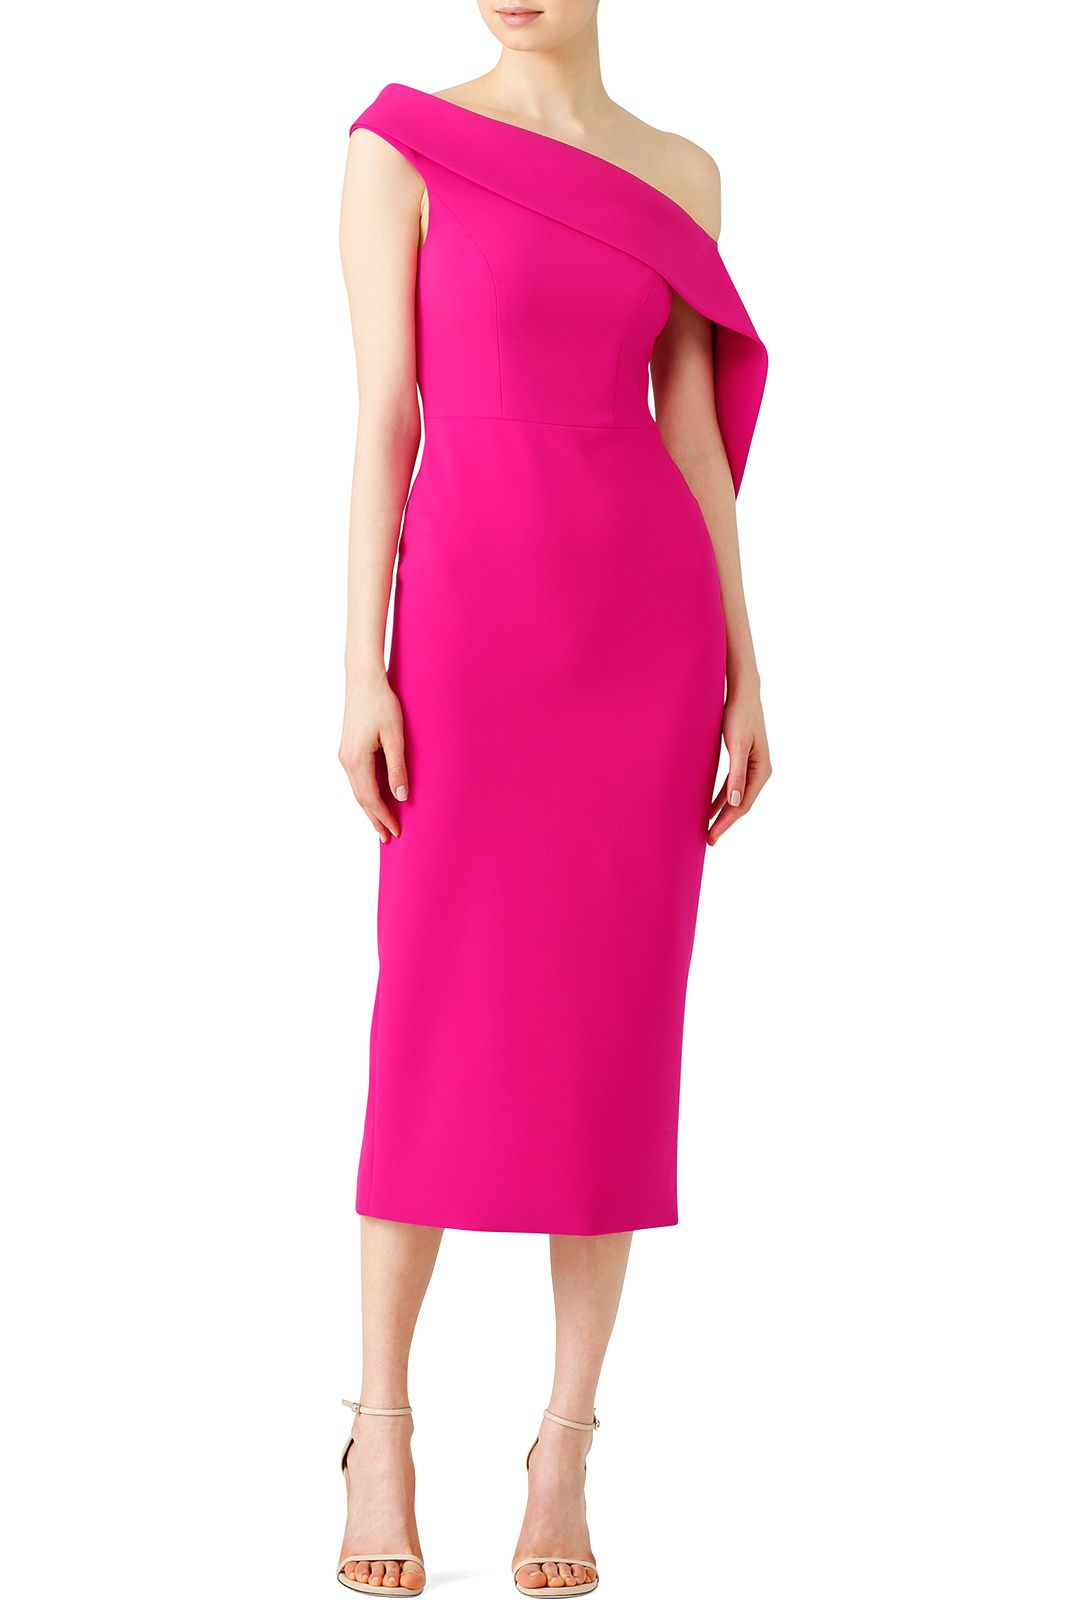 00b666e66bf283 Rent Fuchsia Drape Dress by Christian Siriano for  200 -  215 only at Rent  the Runway.